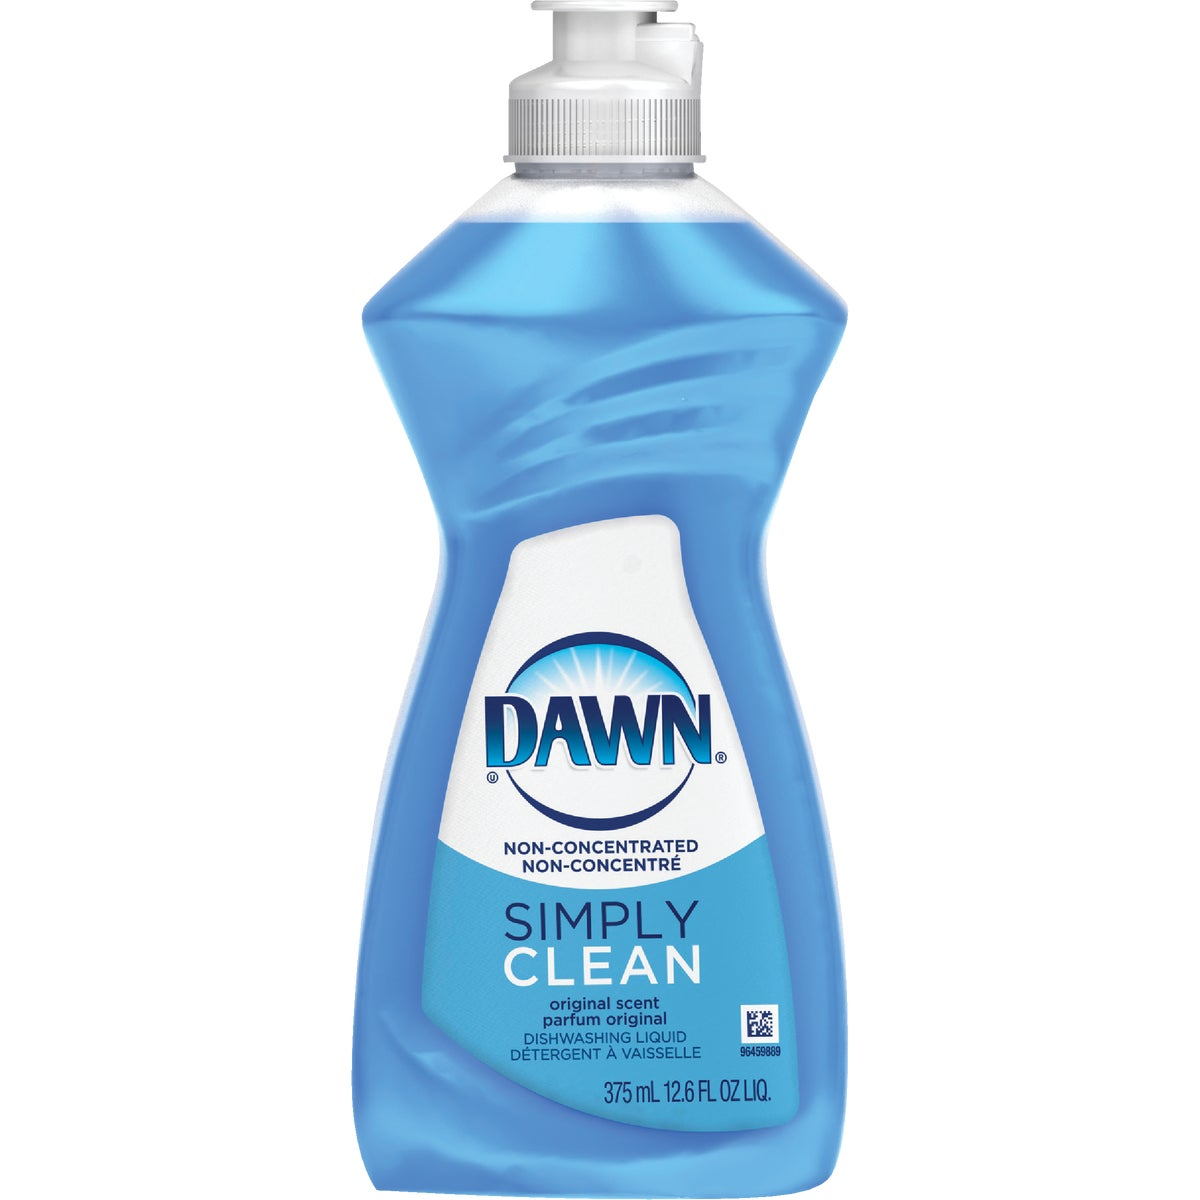 12.6OZ DAWN DISH SOAP - 82789 by Procter & Gamble